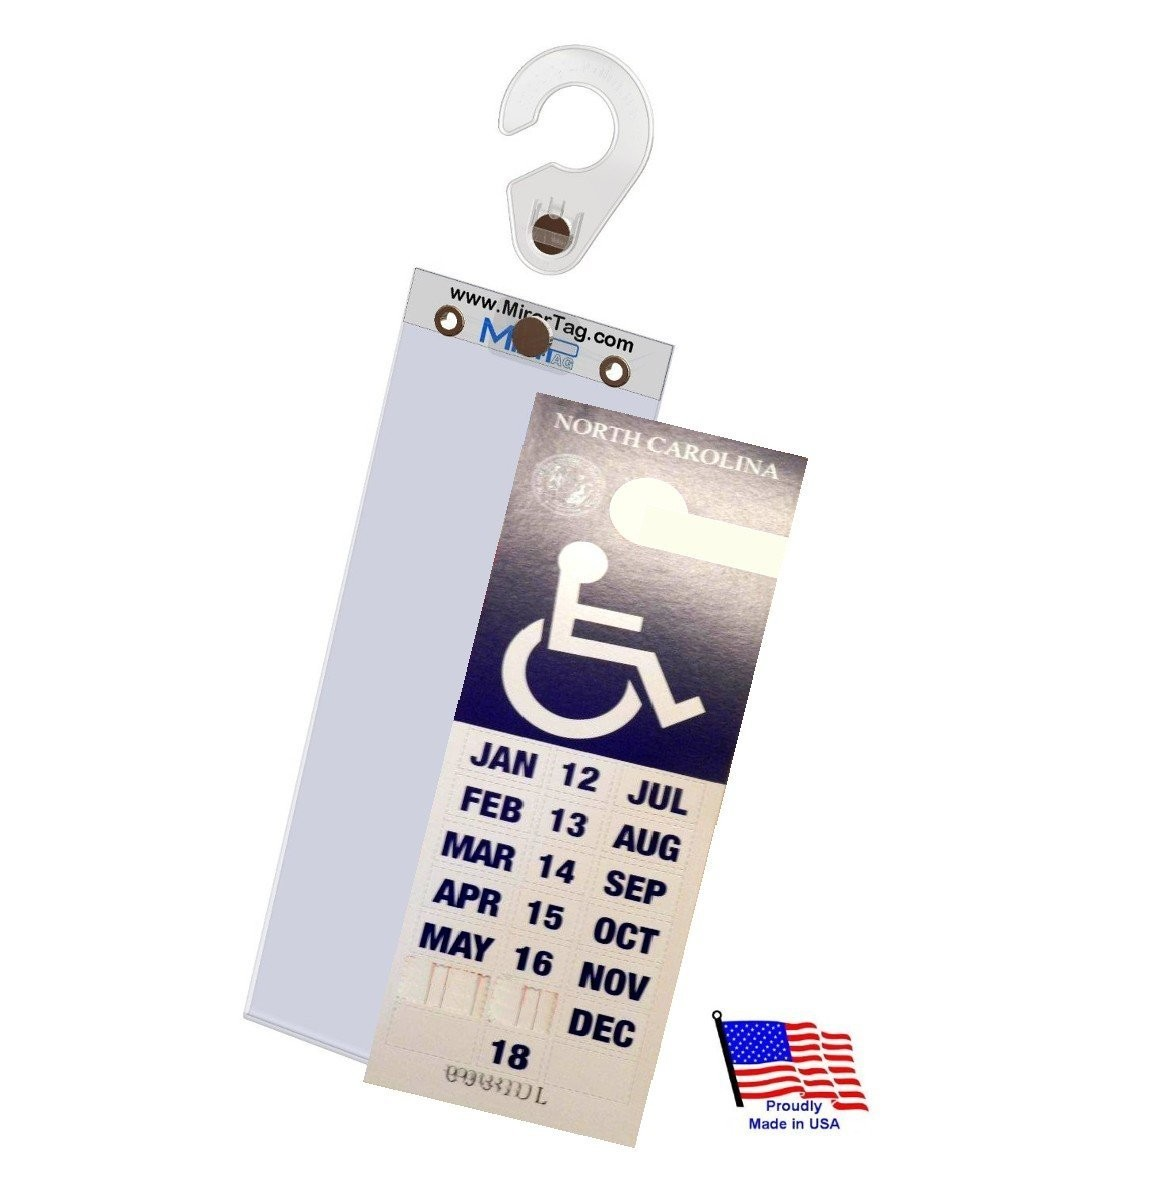 Placard Plus Protect And Display Your Handicap Parking Permit In A Snap Mirortag